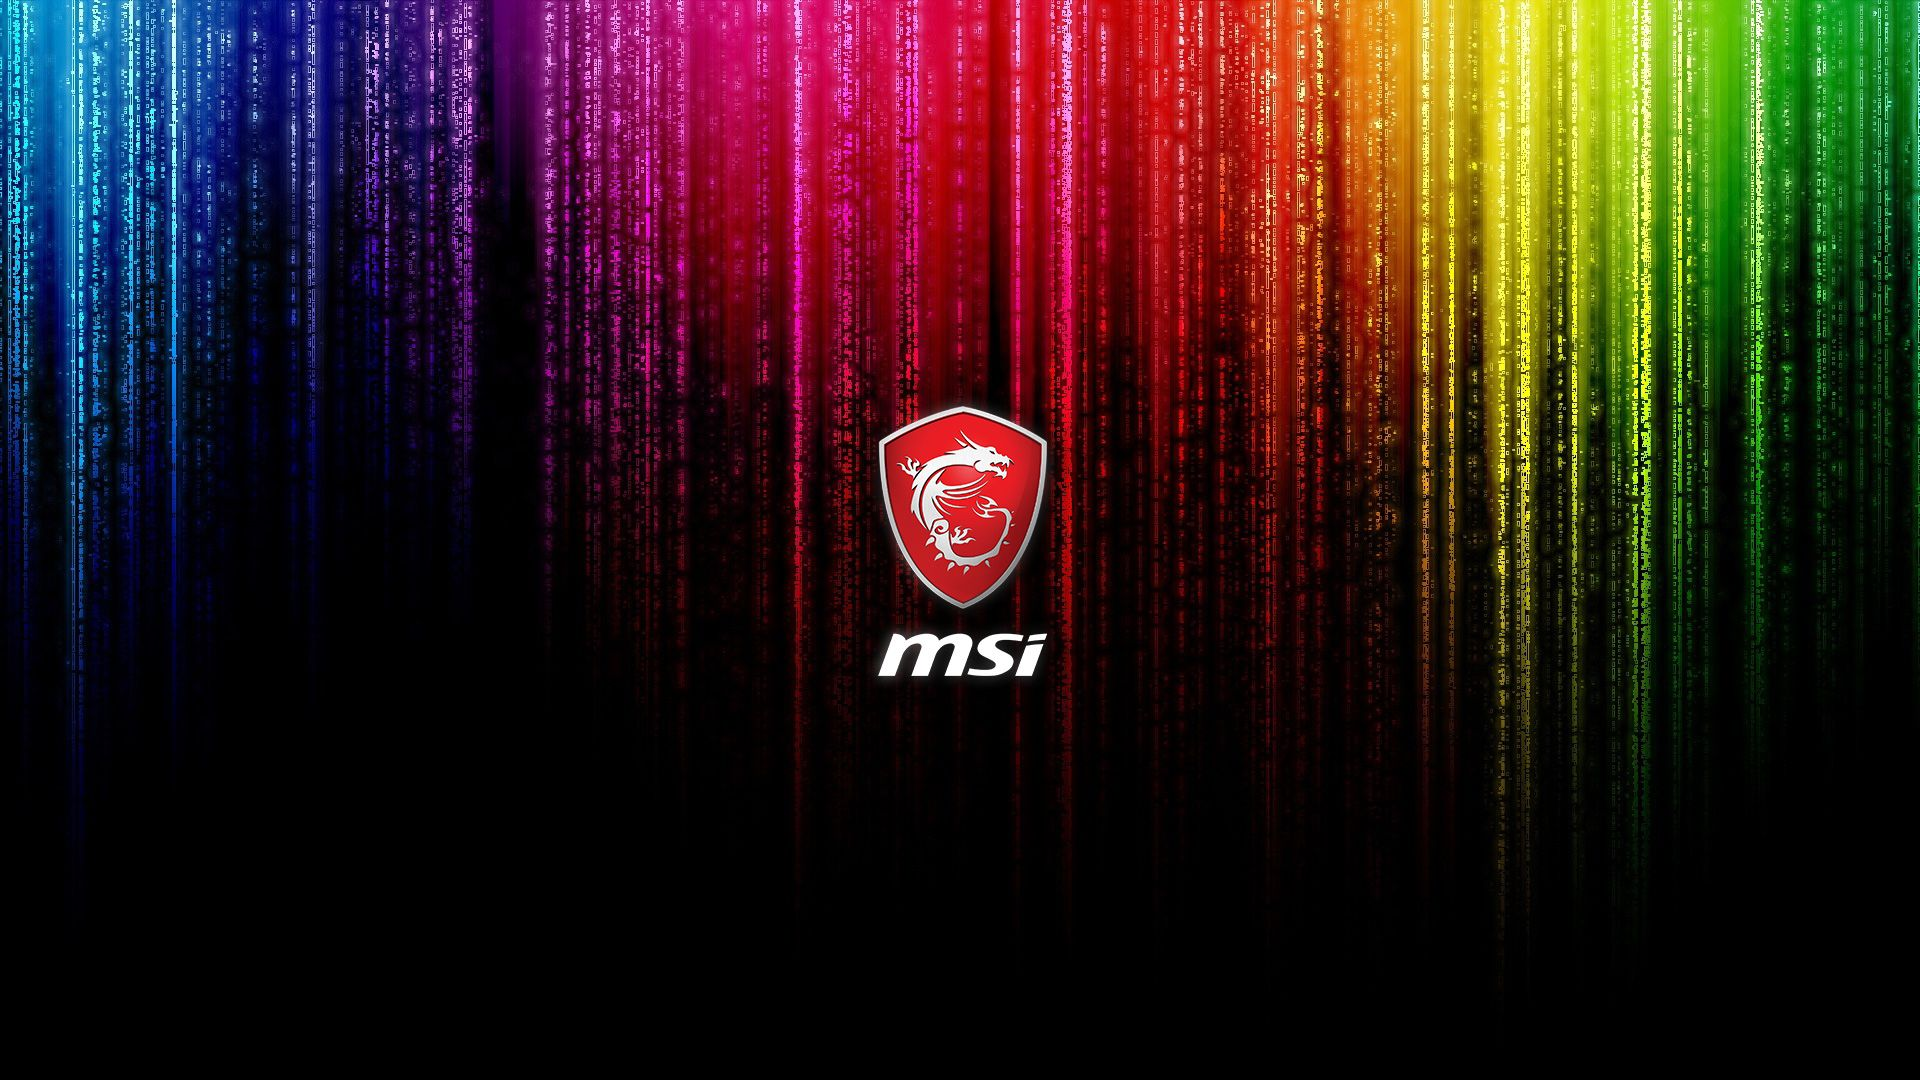 Awesome 45 Msi Wallpaper For Laptops In 2020 Destop Wallpaper Technology Wallpaper Computer Wallpaper Desktop Wallpapers